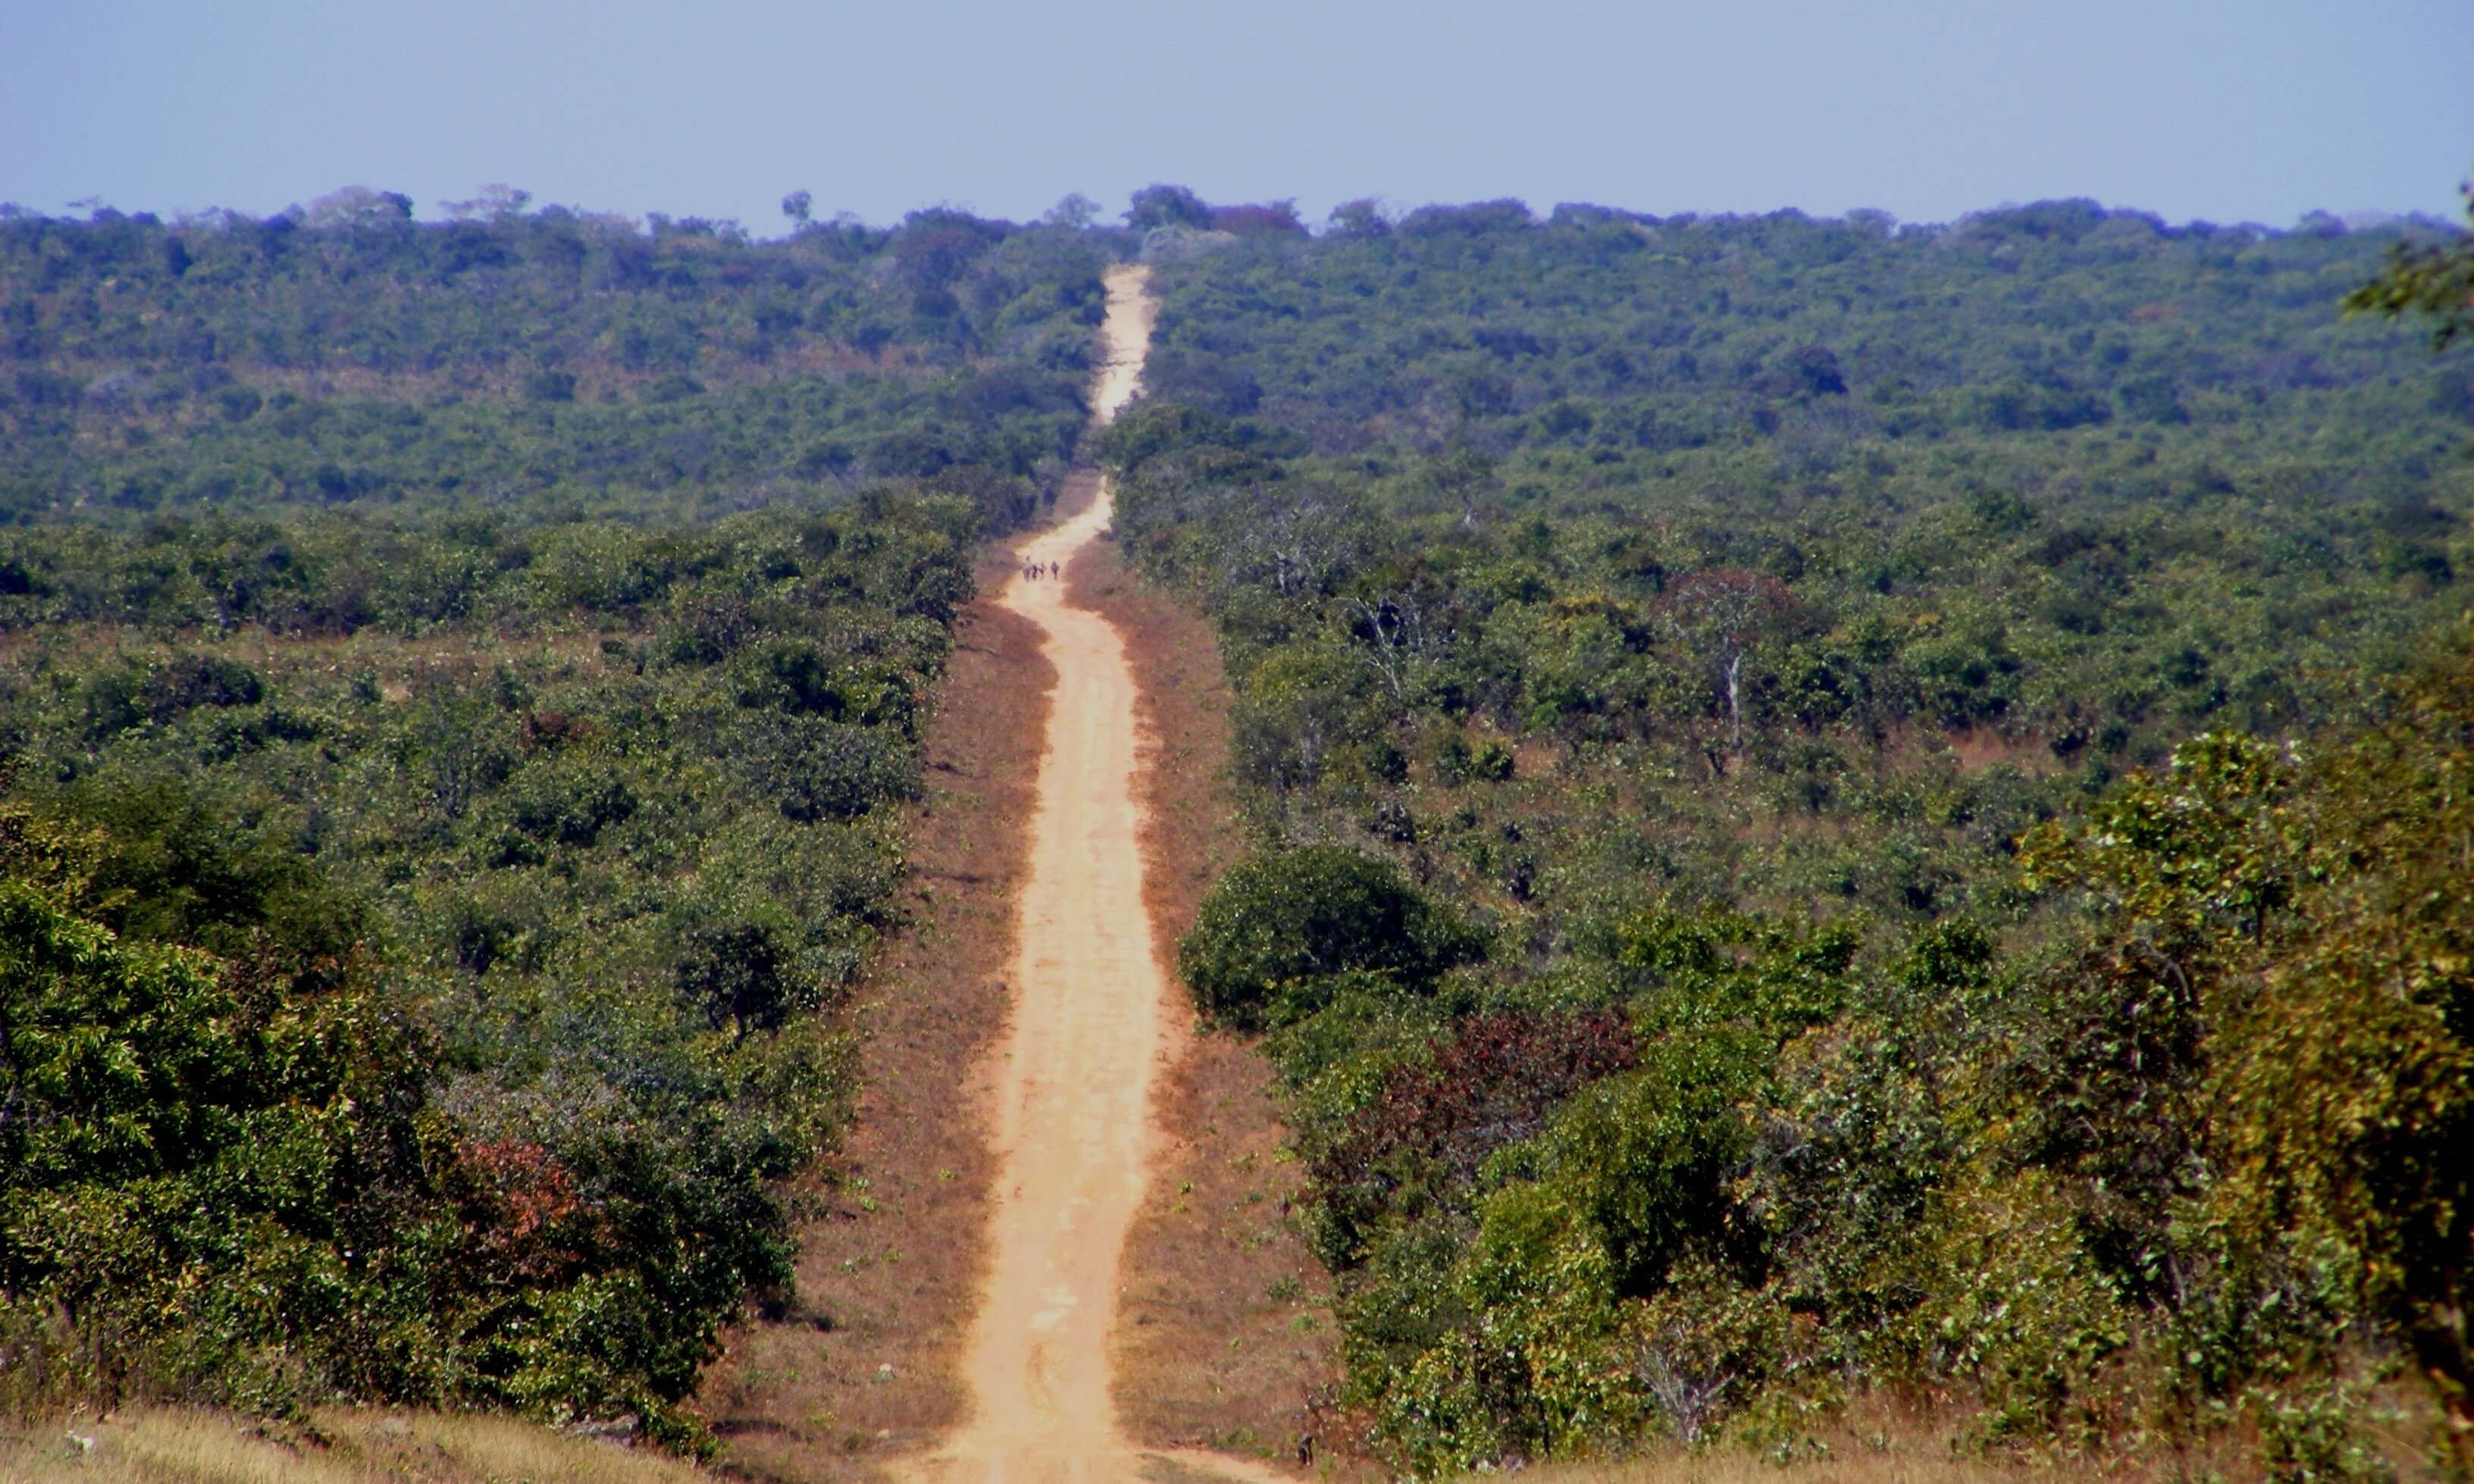 Zambia, endless road